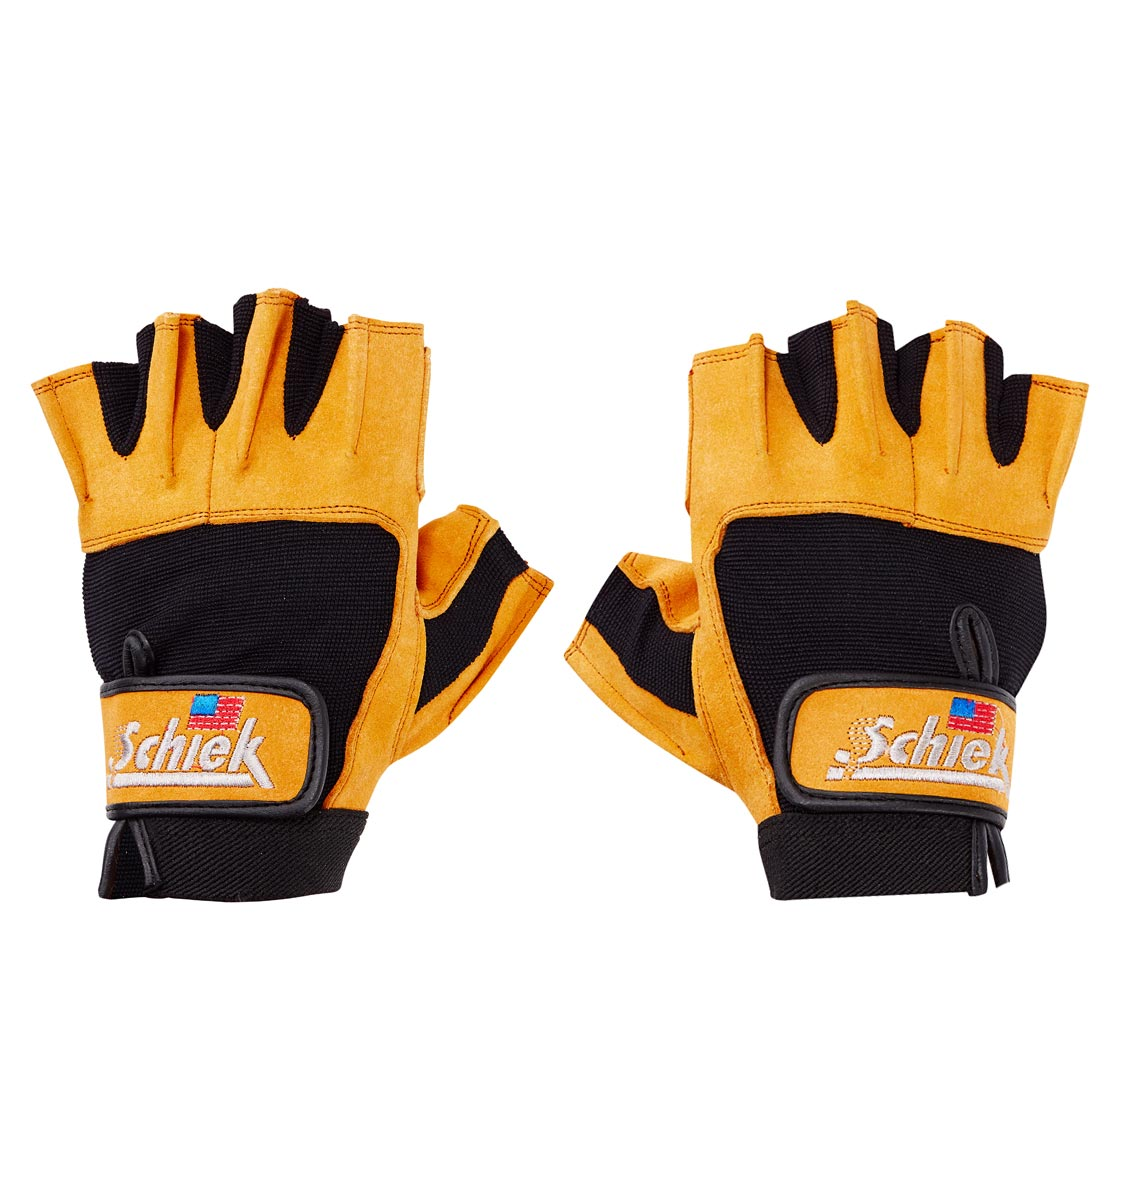 415 Schiek Power Series Lifting Gloves Pair Top